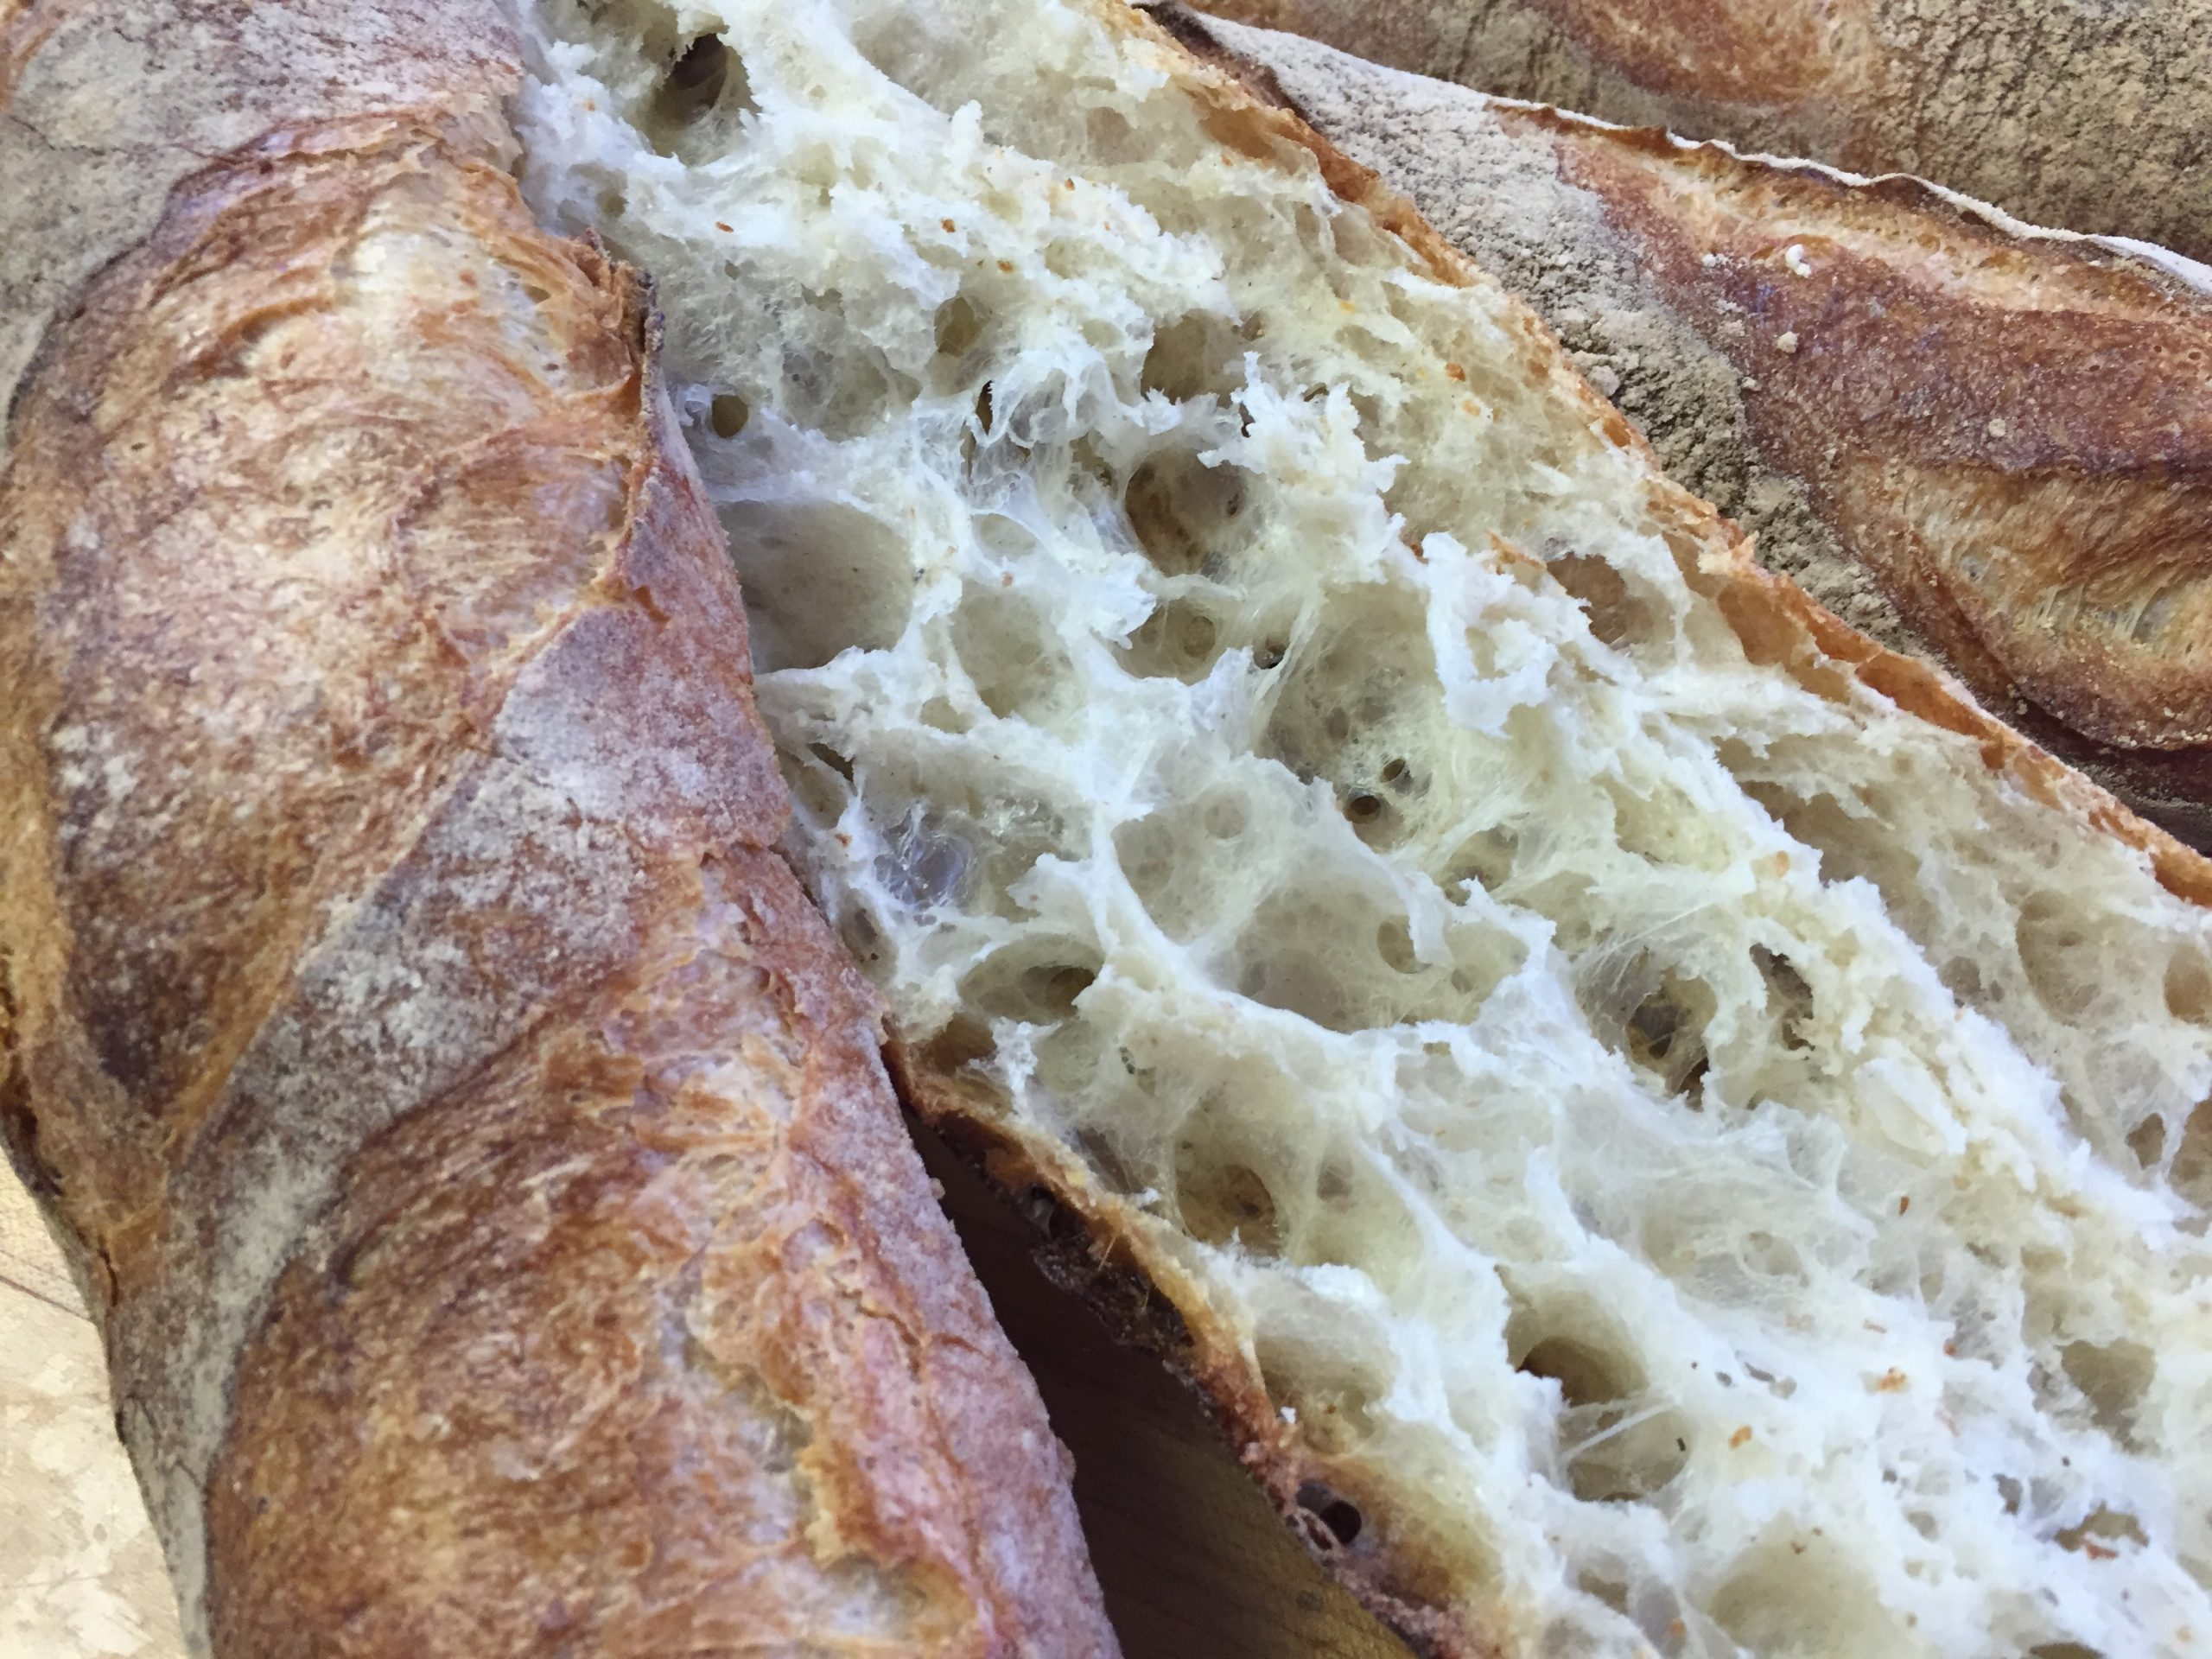 French Baguette recipe made with Poolish